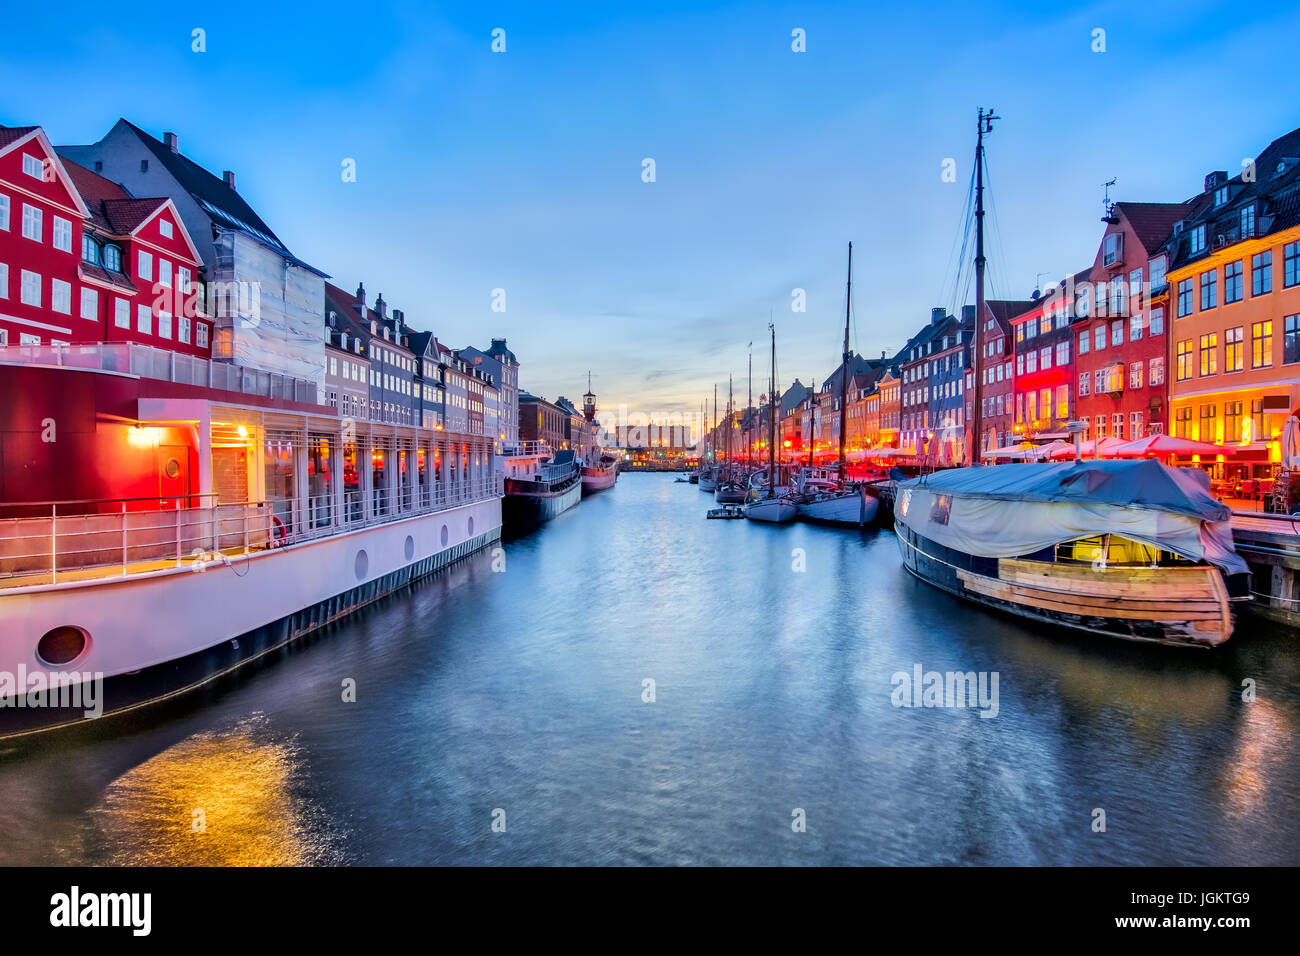 Nyhavn with colorful facades of old houses in Copenhagen, Denmark - Stock Image